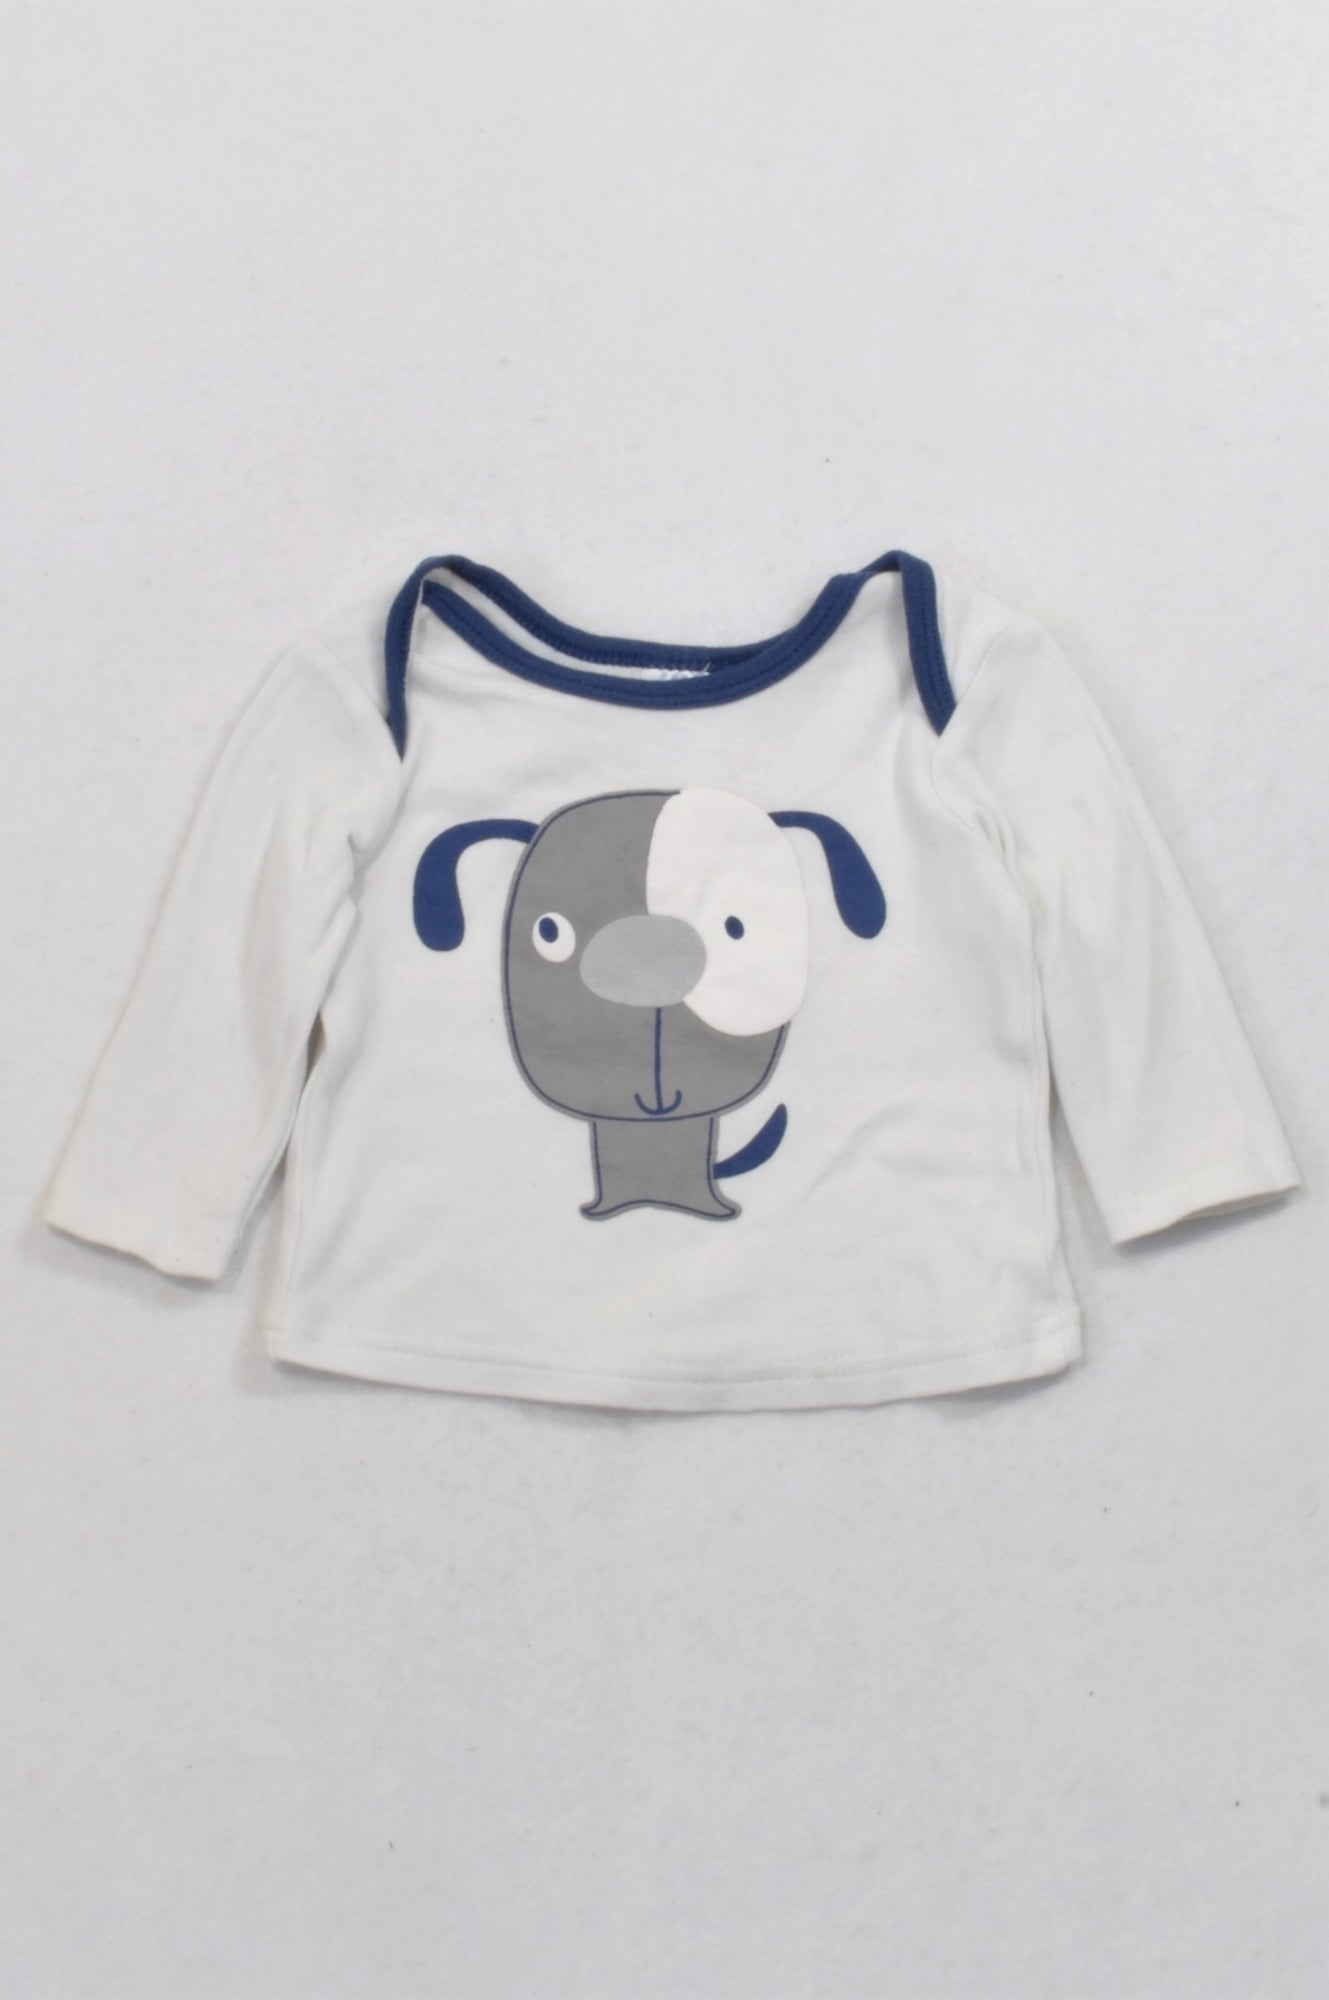 Ackermans Blue Doggy T-shirt Boys 0-3 months